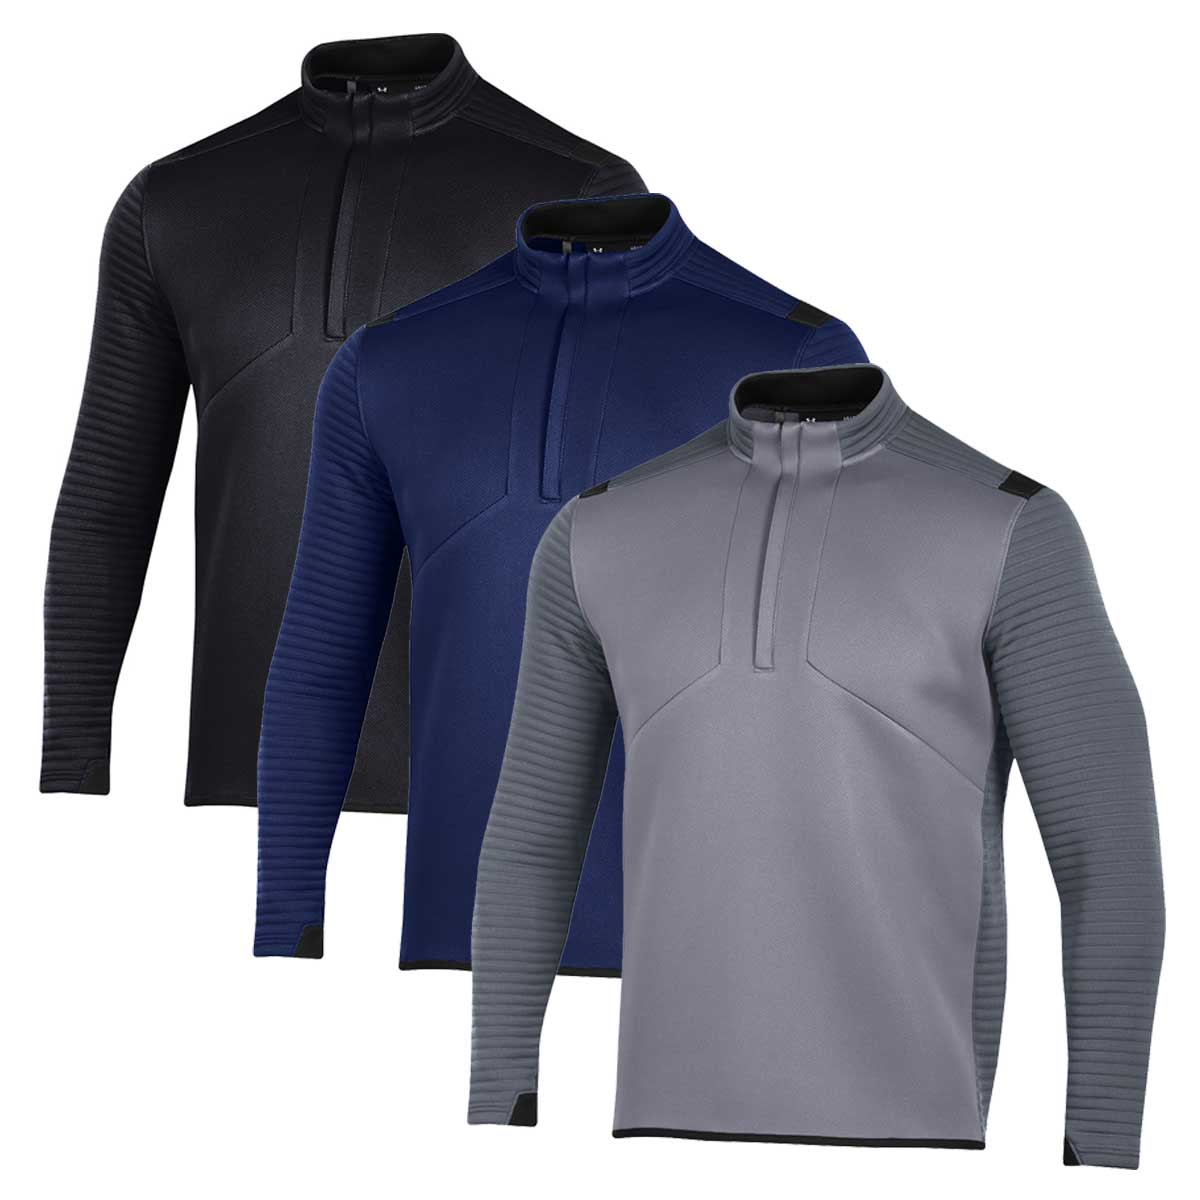 Under Armour Men's Daytona Pullover